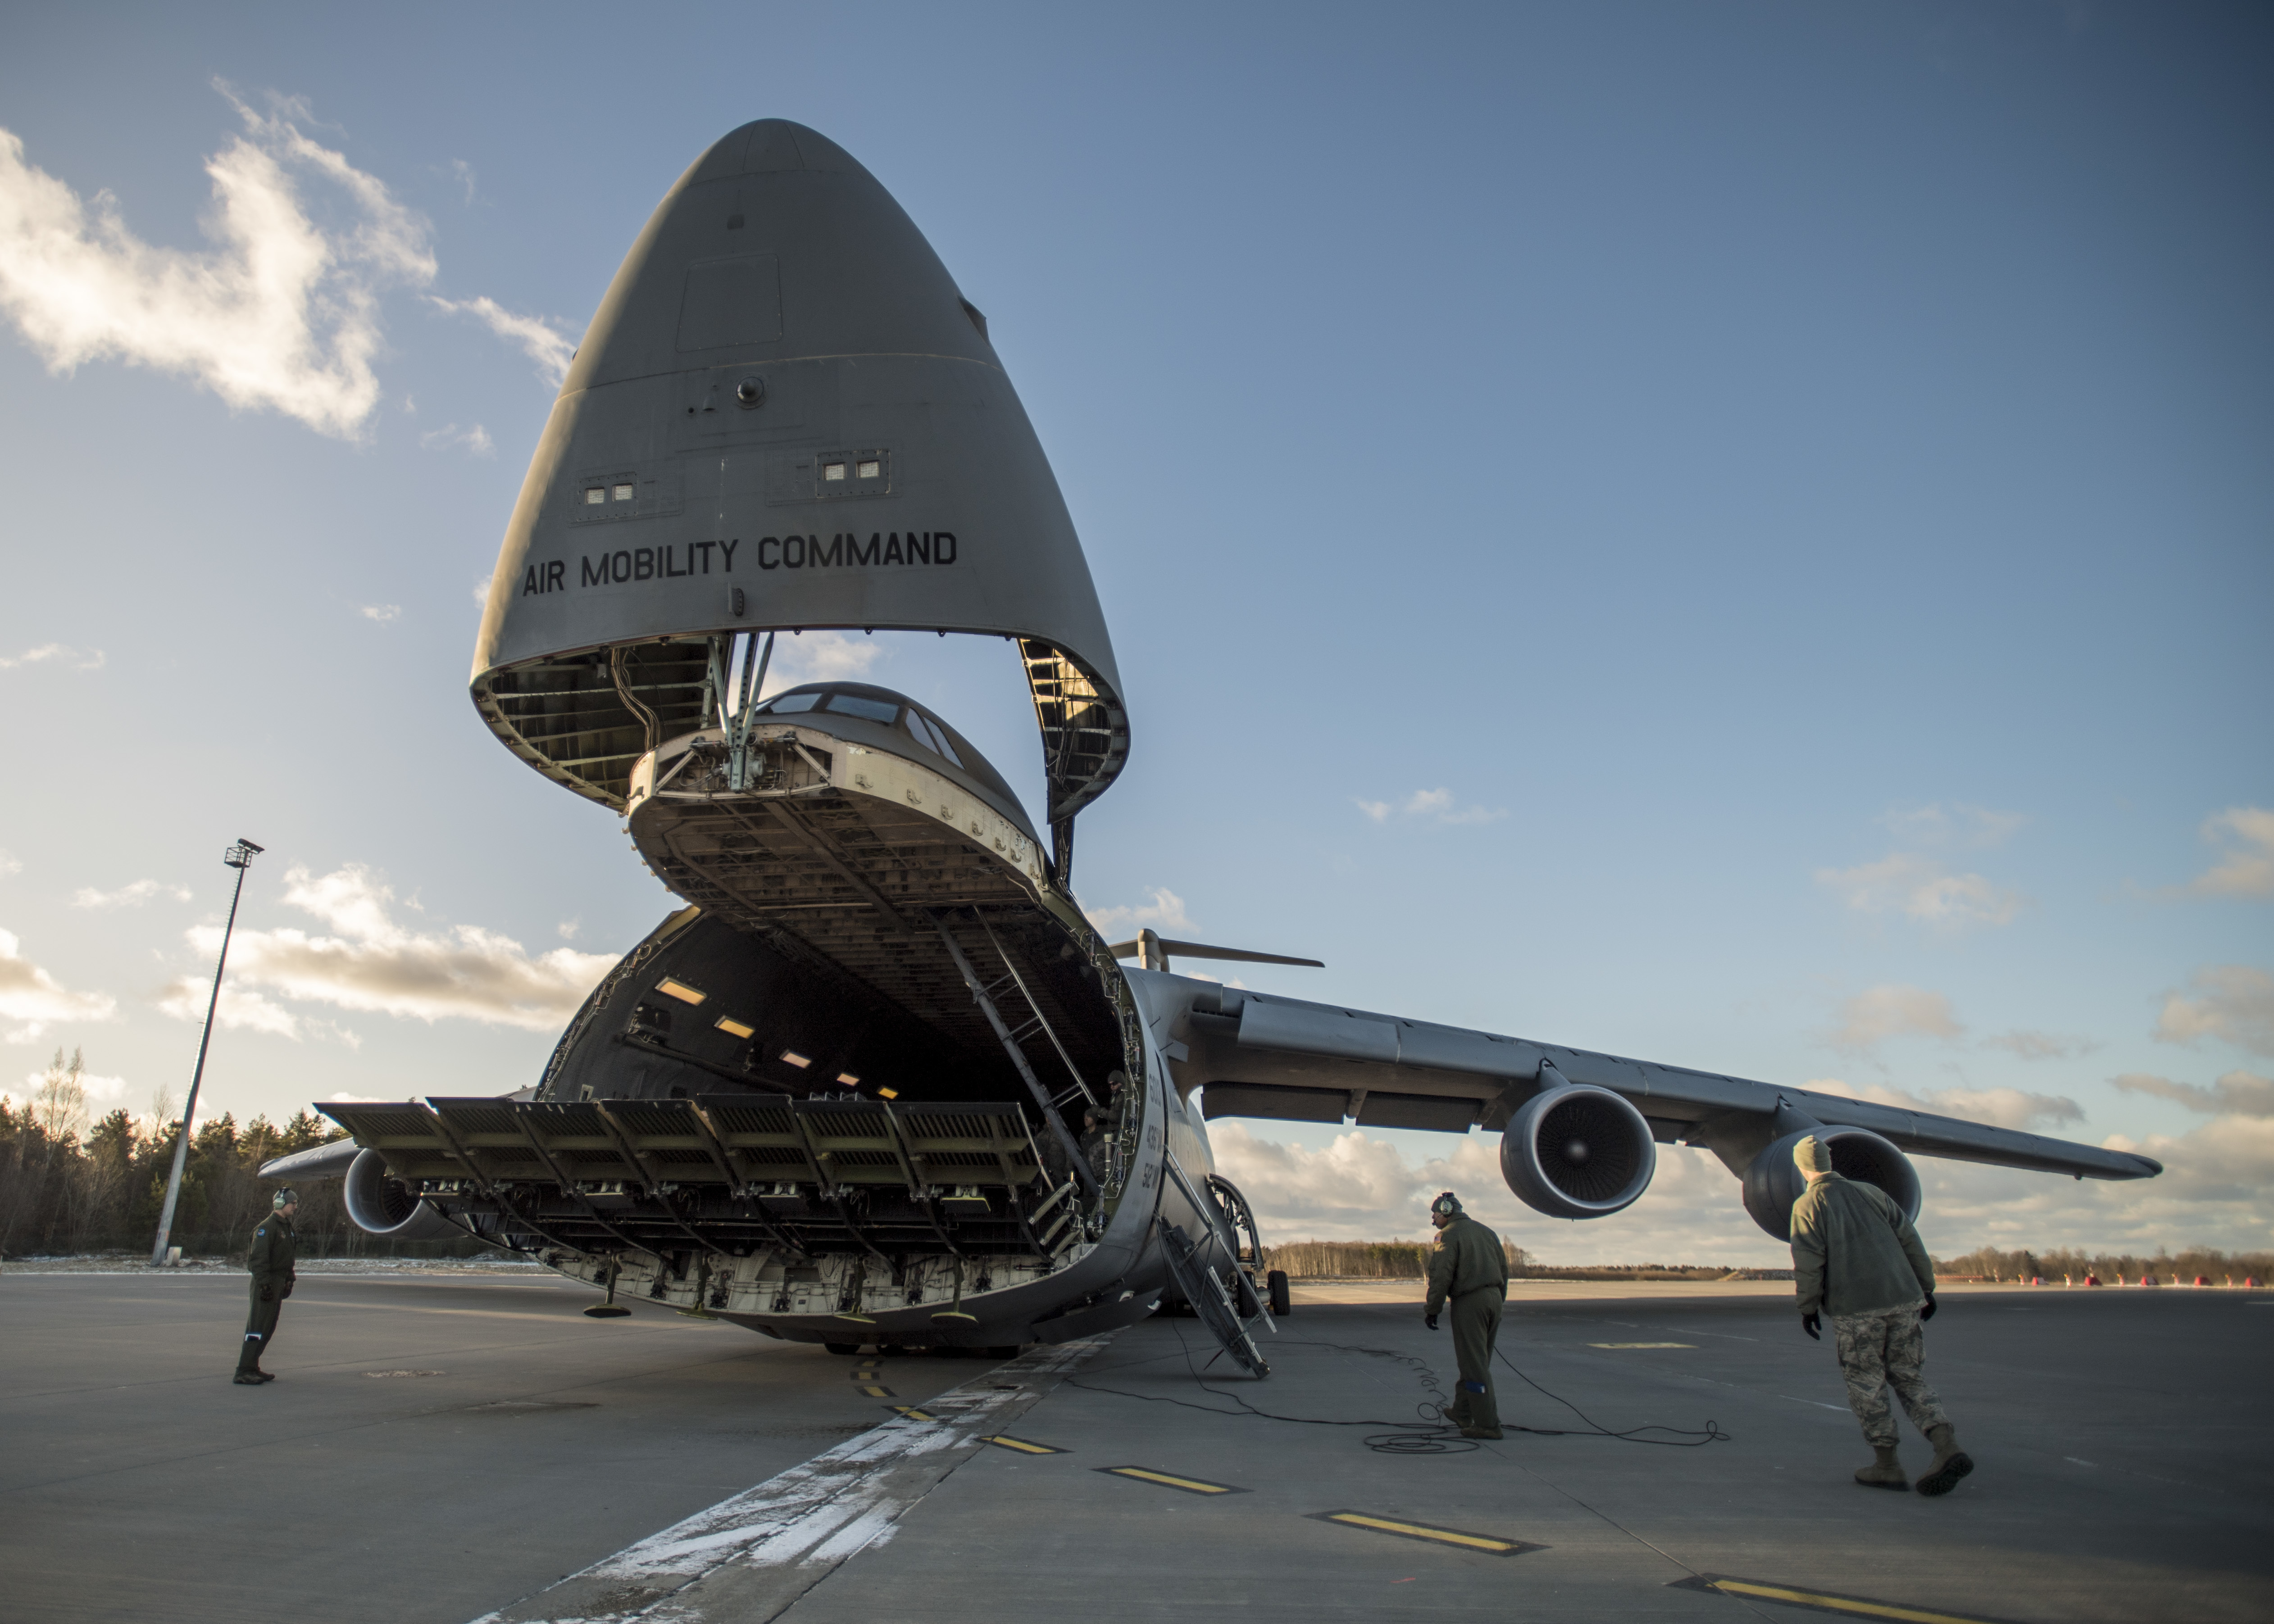 U.S. Airmen get ready to receive the supplies from a C-5 Galaxy cargo plane that were delivered in support of the Theater Security Package 18.1, Jan. 8, 2018. This TSP highlights the U.S.'s ability to deploy fighter aircraft to support our partners and allies in the European theater and around the world. (DoD photo by MC3 Cody Hendrix)